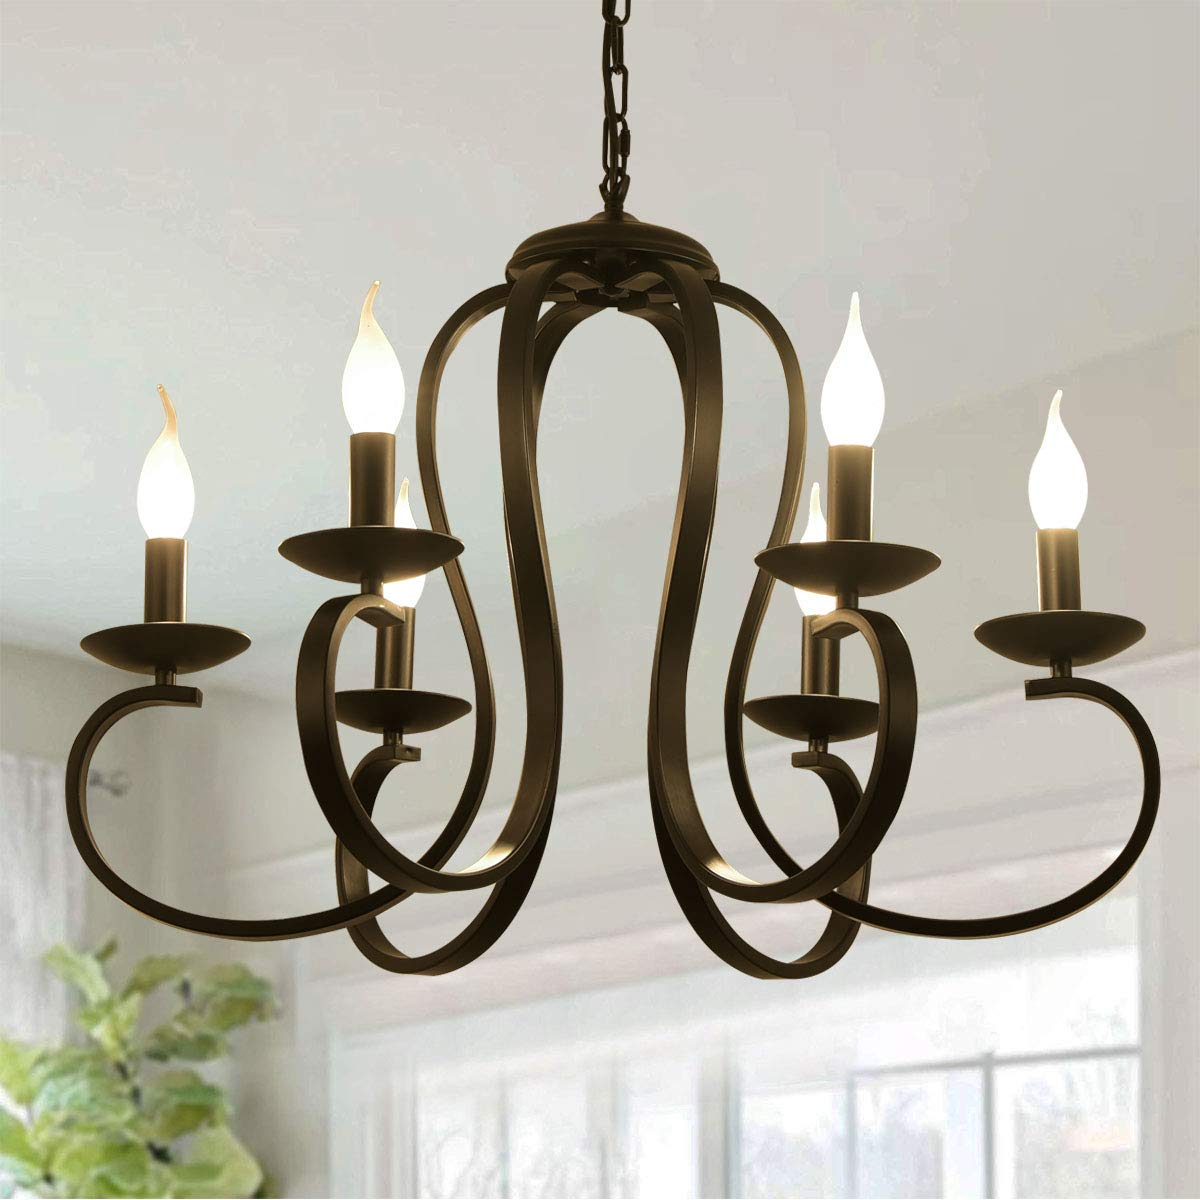 Ganeed 6 Lights Chandeliers French Country Vintage Metal Chandelier Lighting Candle Style Pendant Light With Black Finish For Farmhouse Dining Room Kitchen Island Foyer